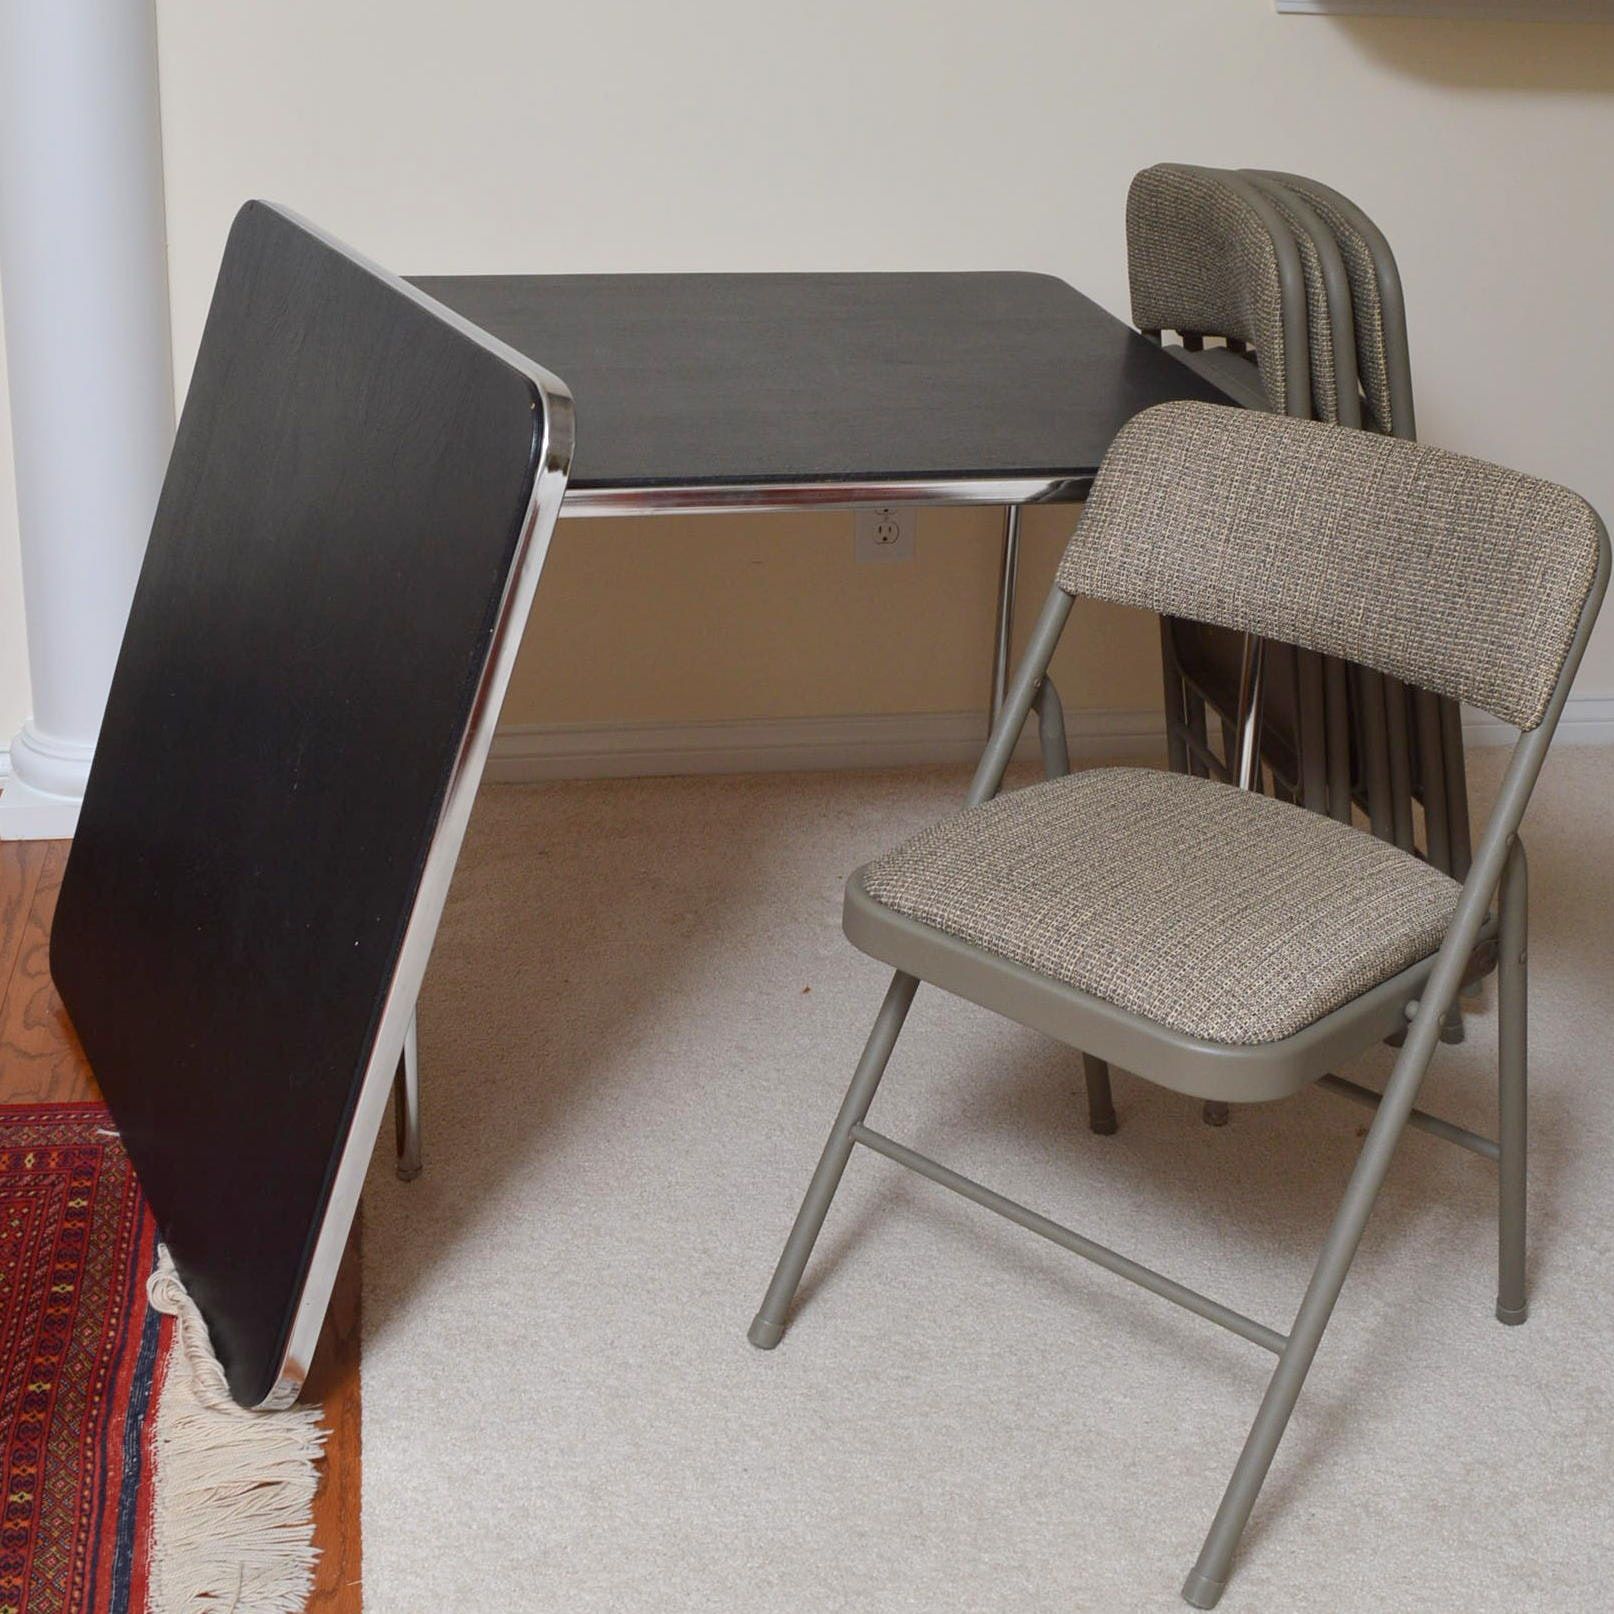 Pair of Folding Tables and Chairs by Samsonite